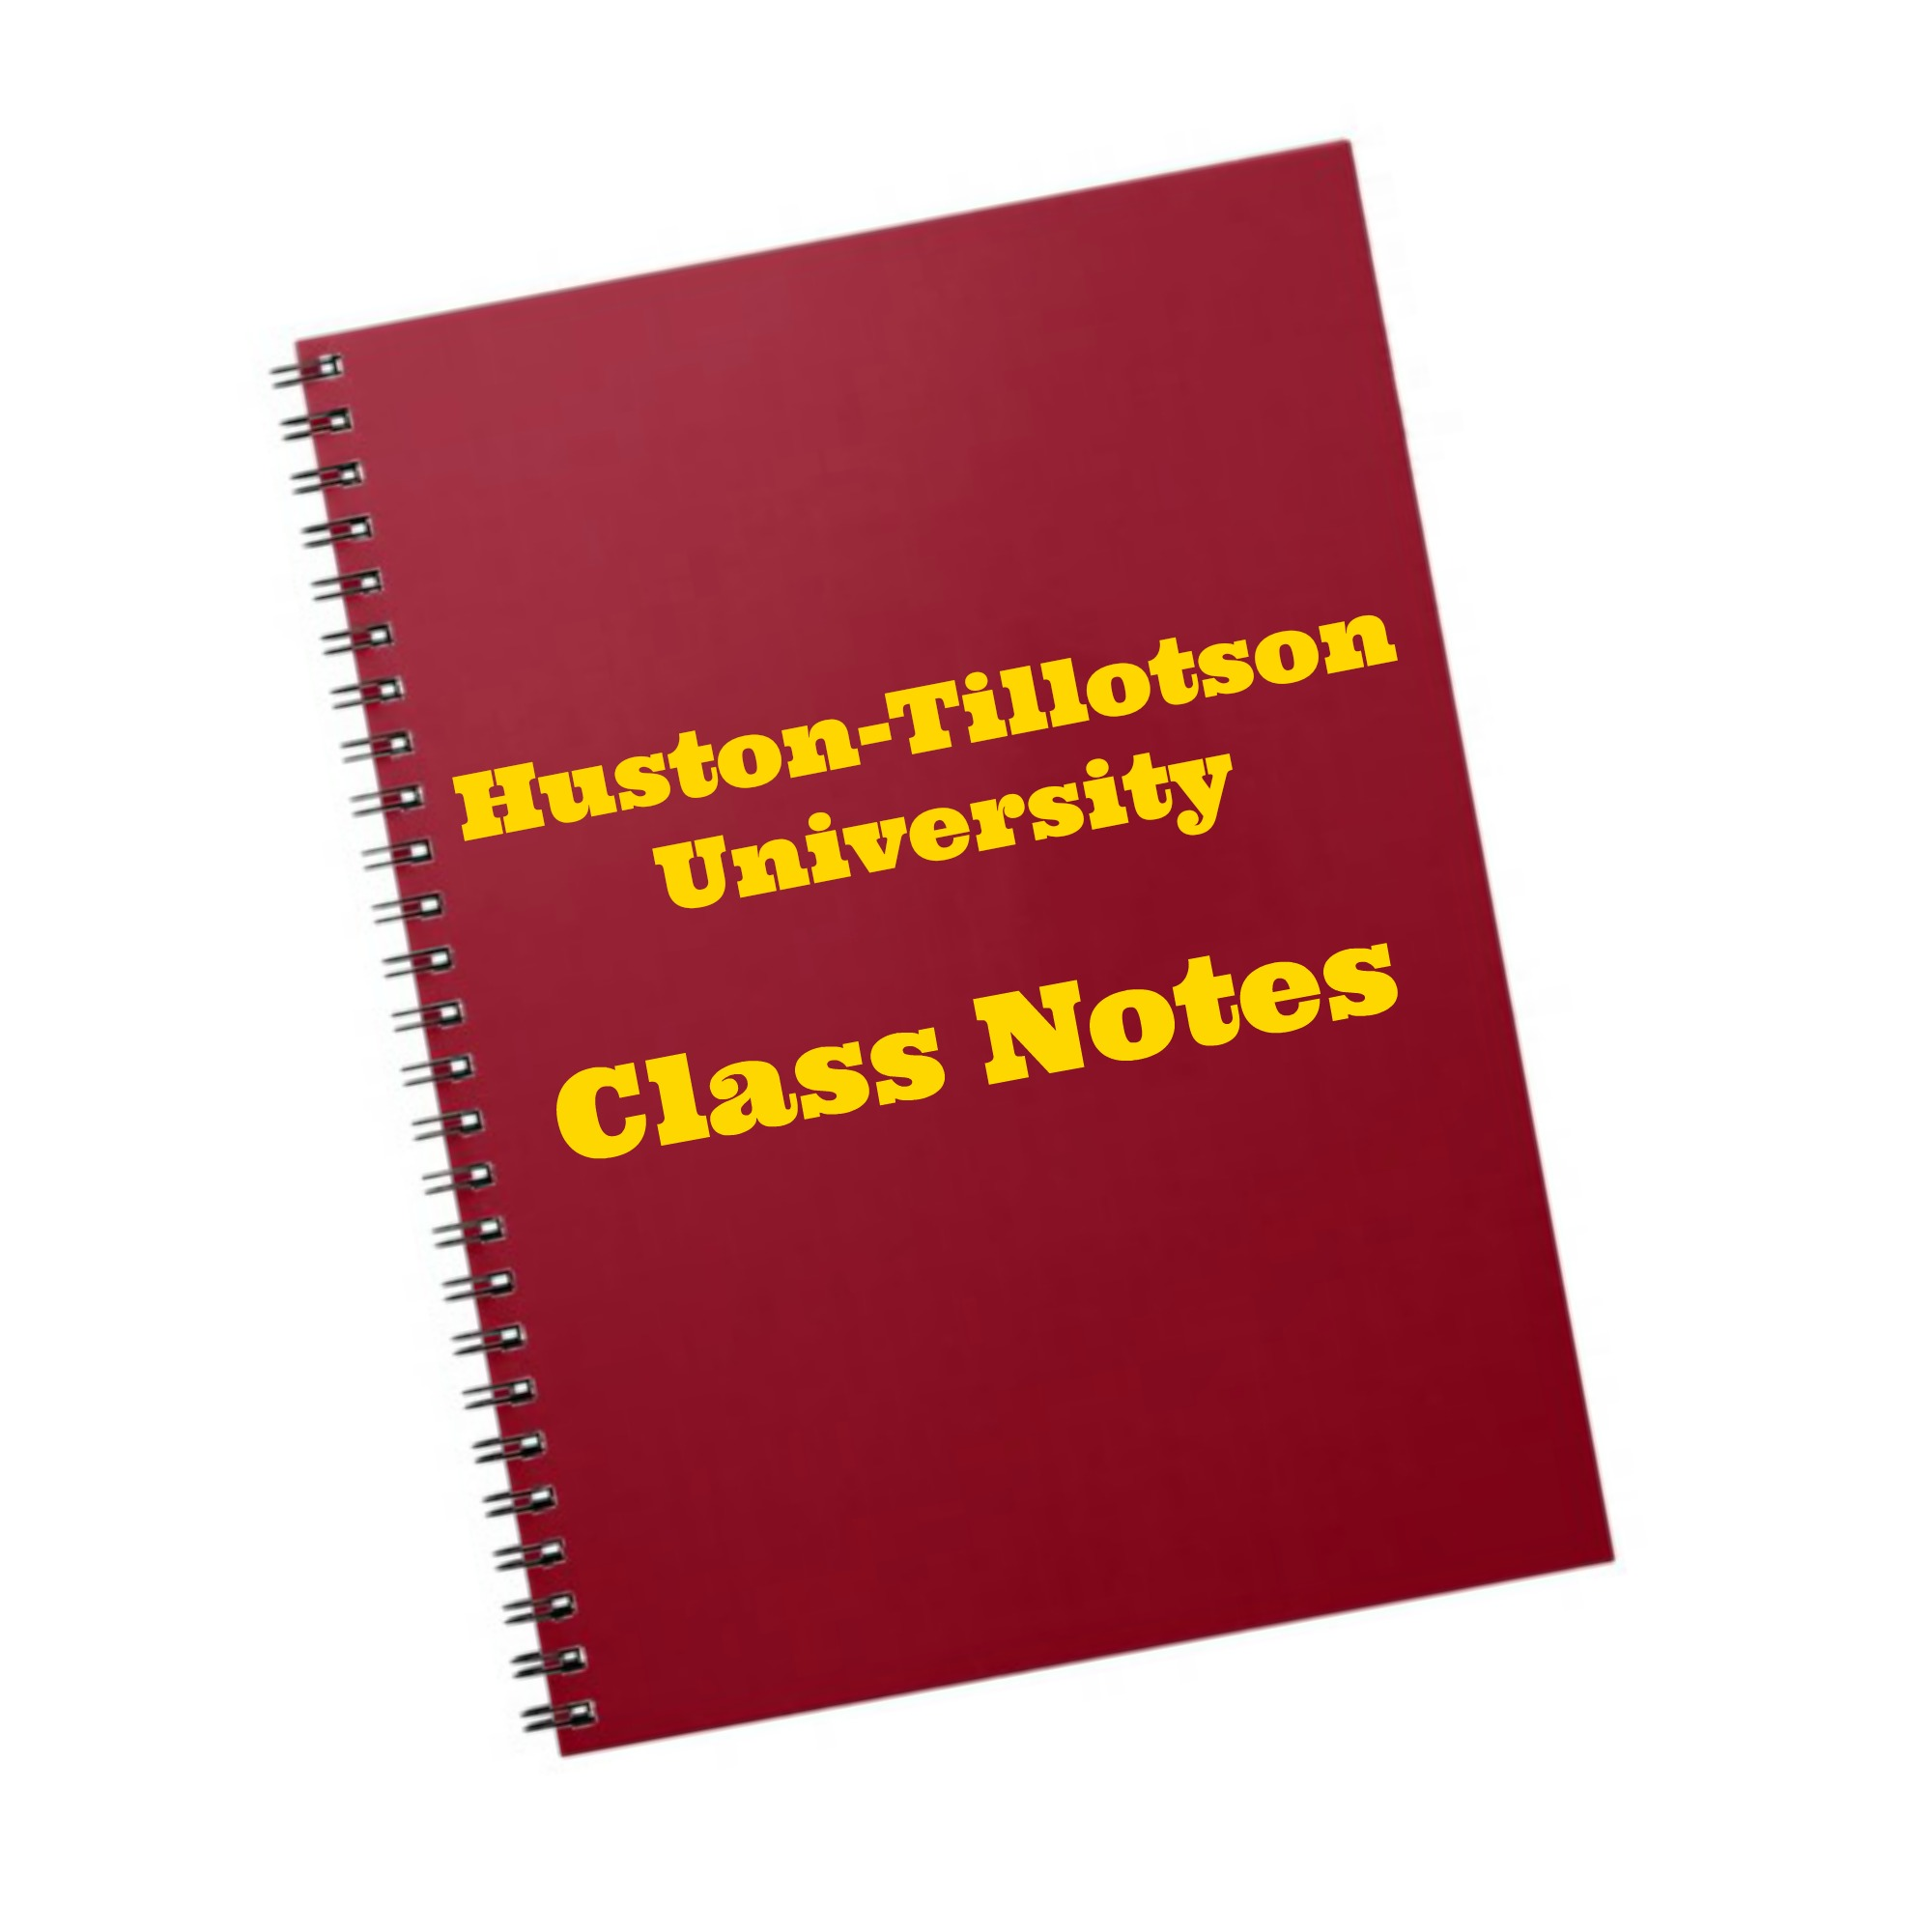 ClassNotes_Image